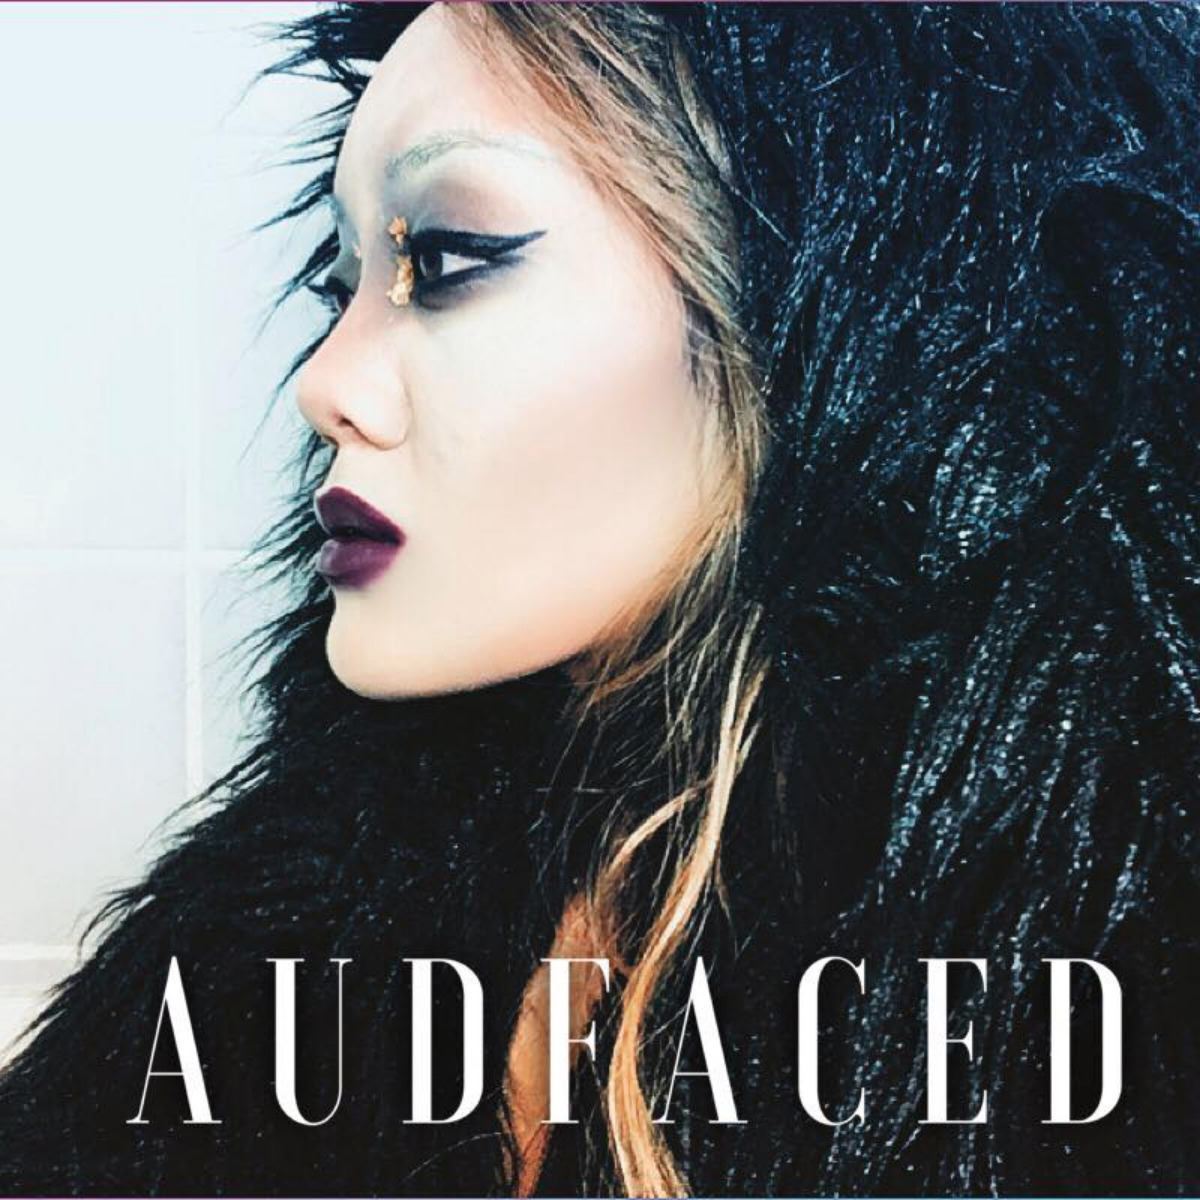 AUDFACED